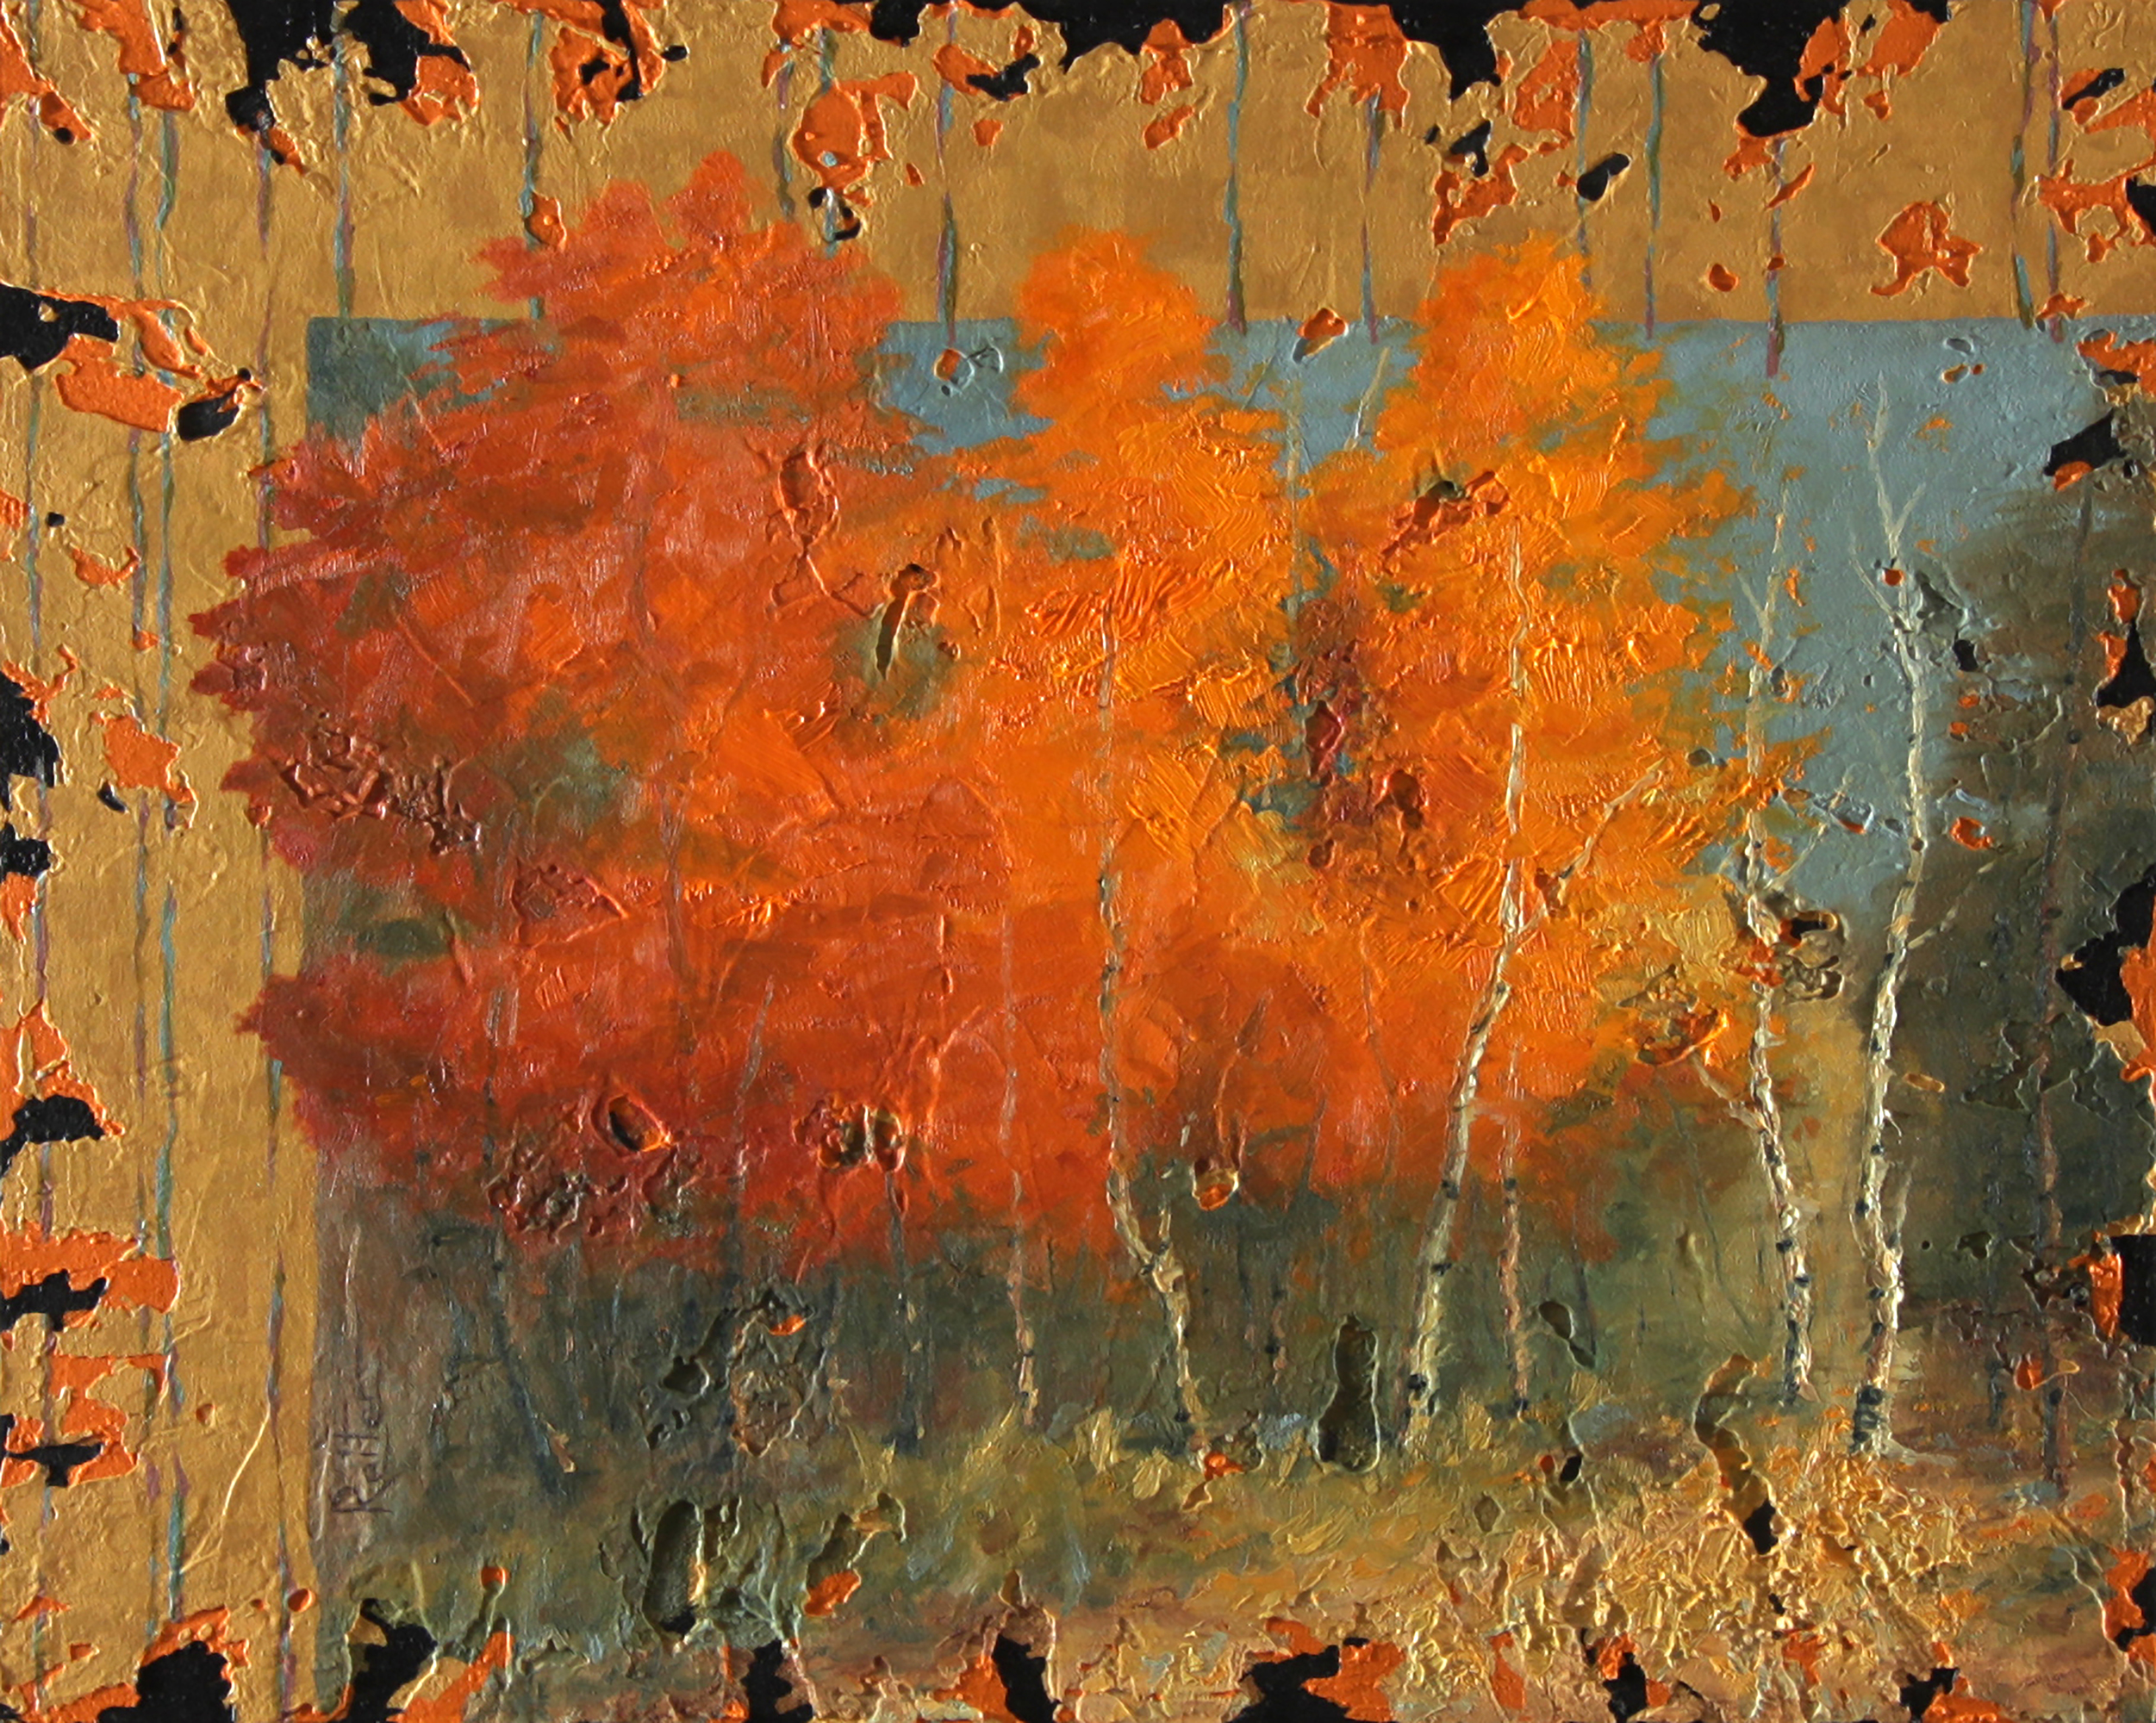 Fall Explosion by Dave Reiter | ArtworkNetwork.com